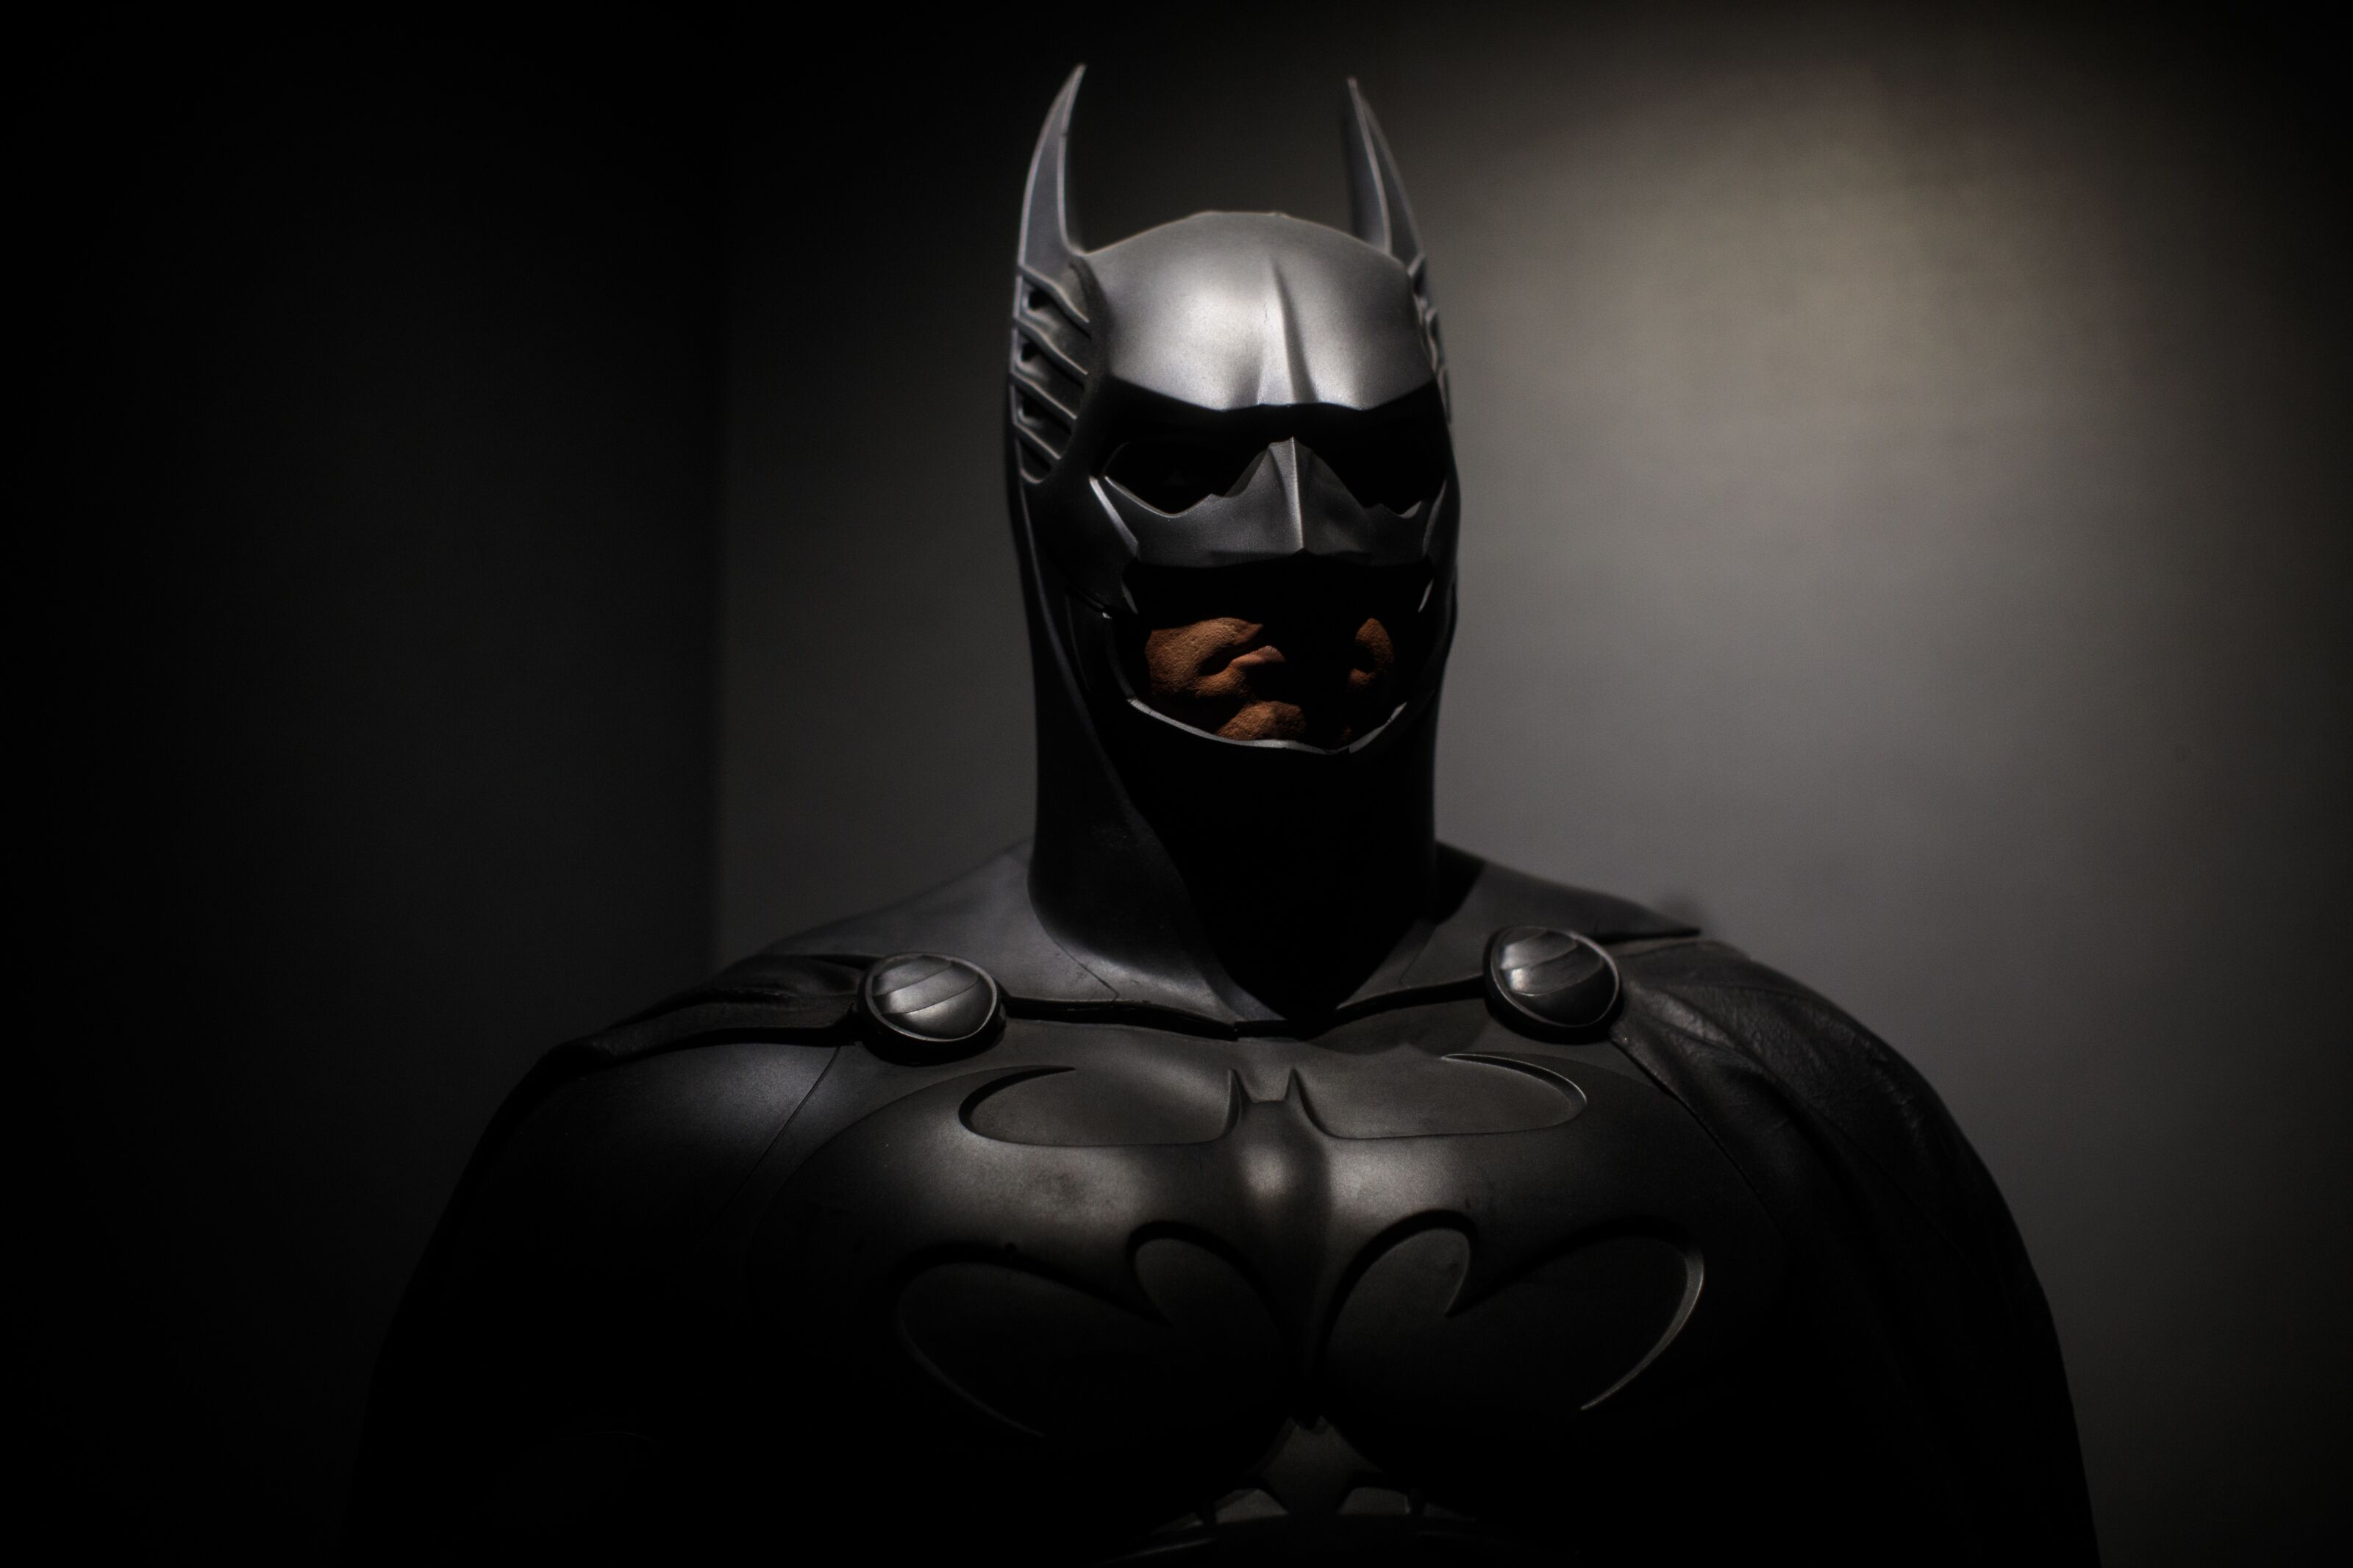 The Batman receives appropriate working title as it enters production